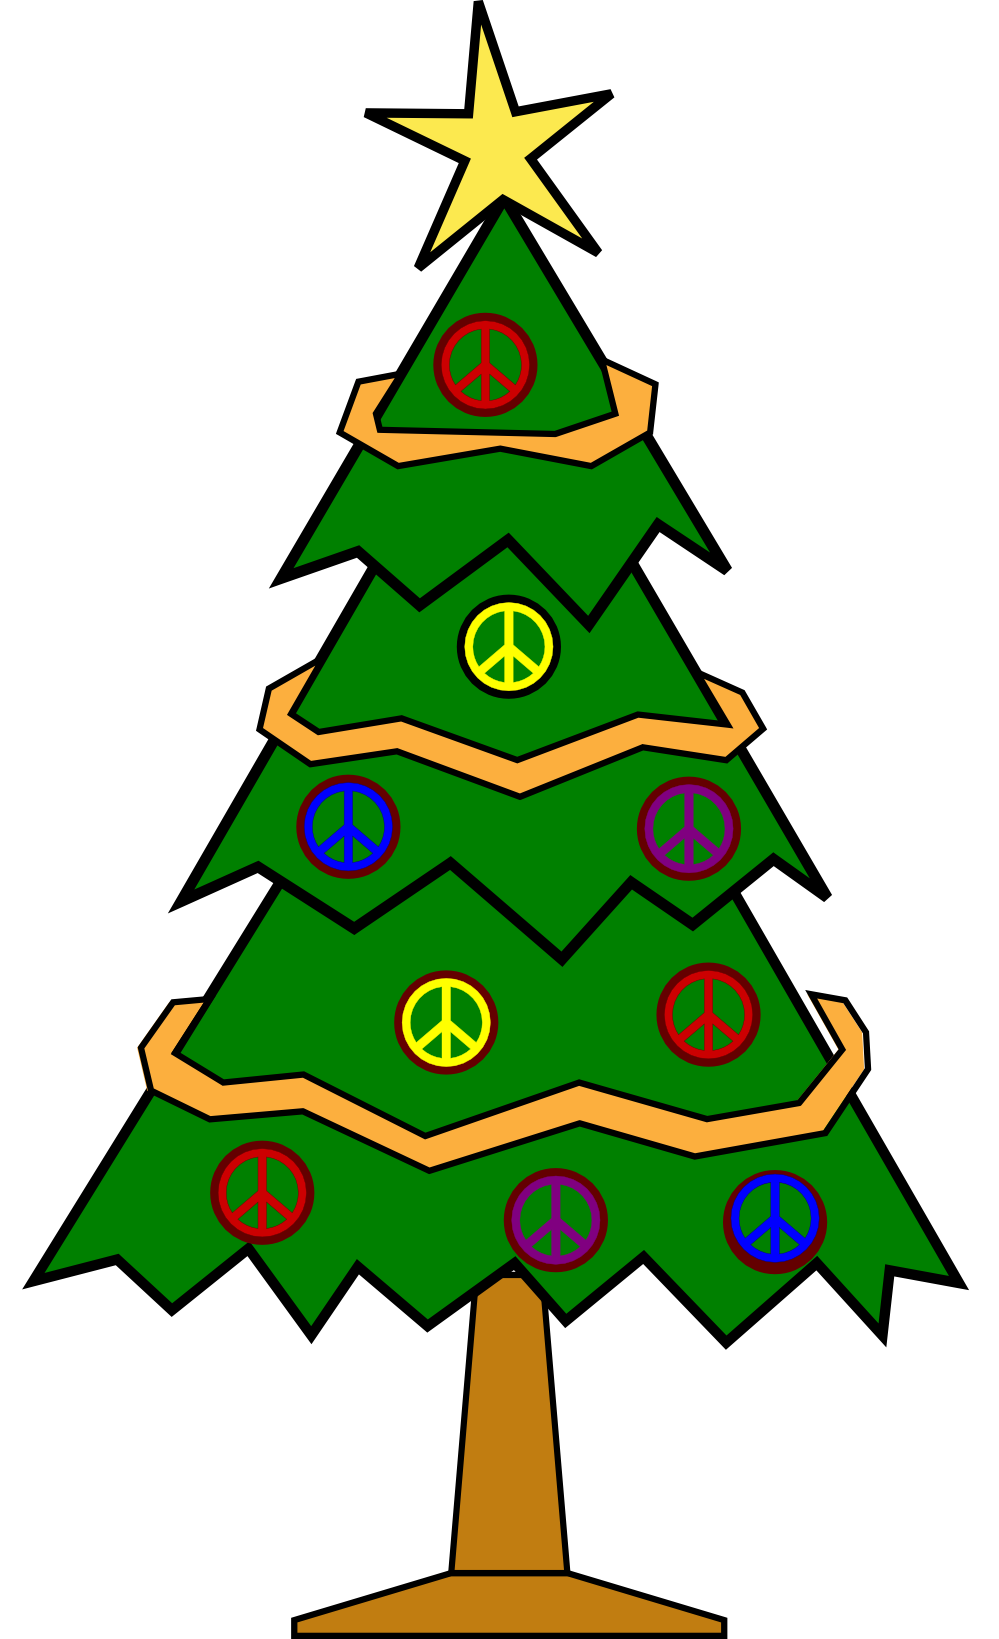 Christmas Tree Line Drawing - ClipArt Best